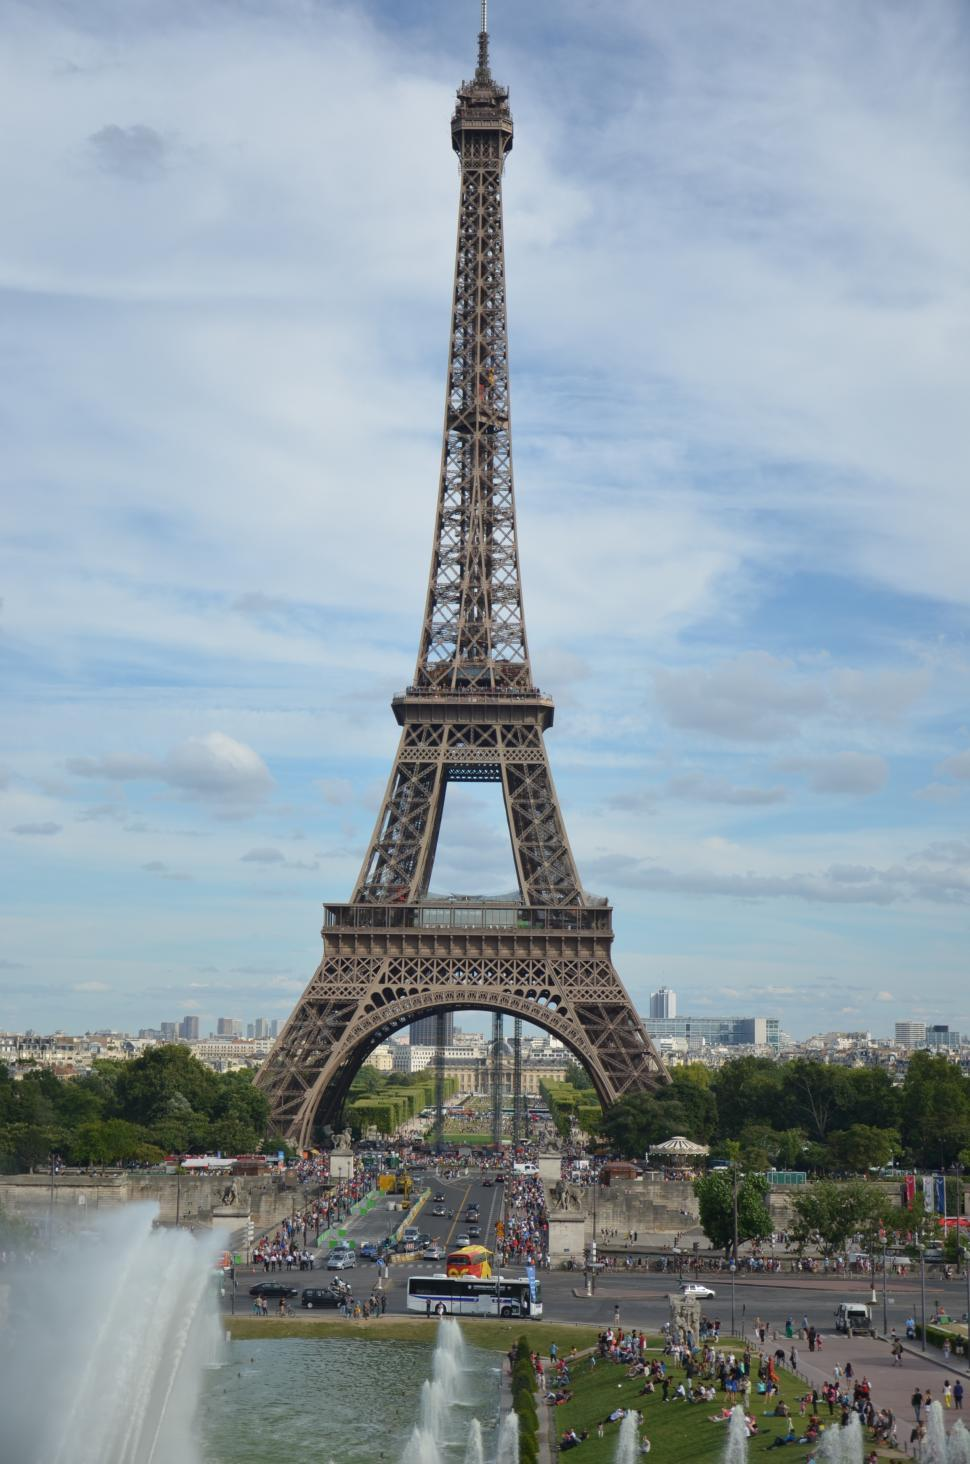 Download Free Stock Photo of Eiffel tower, Paris, France, Europe